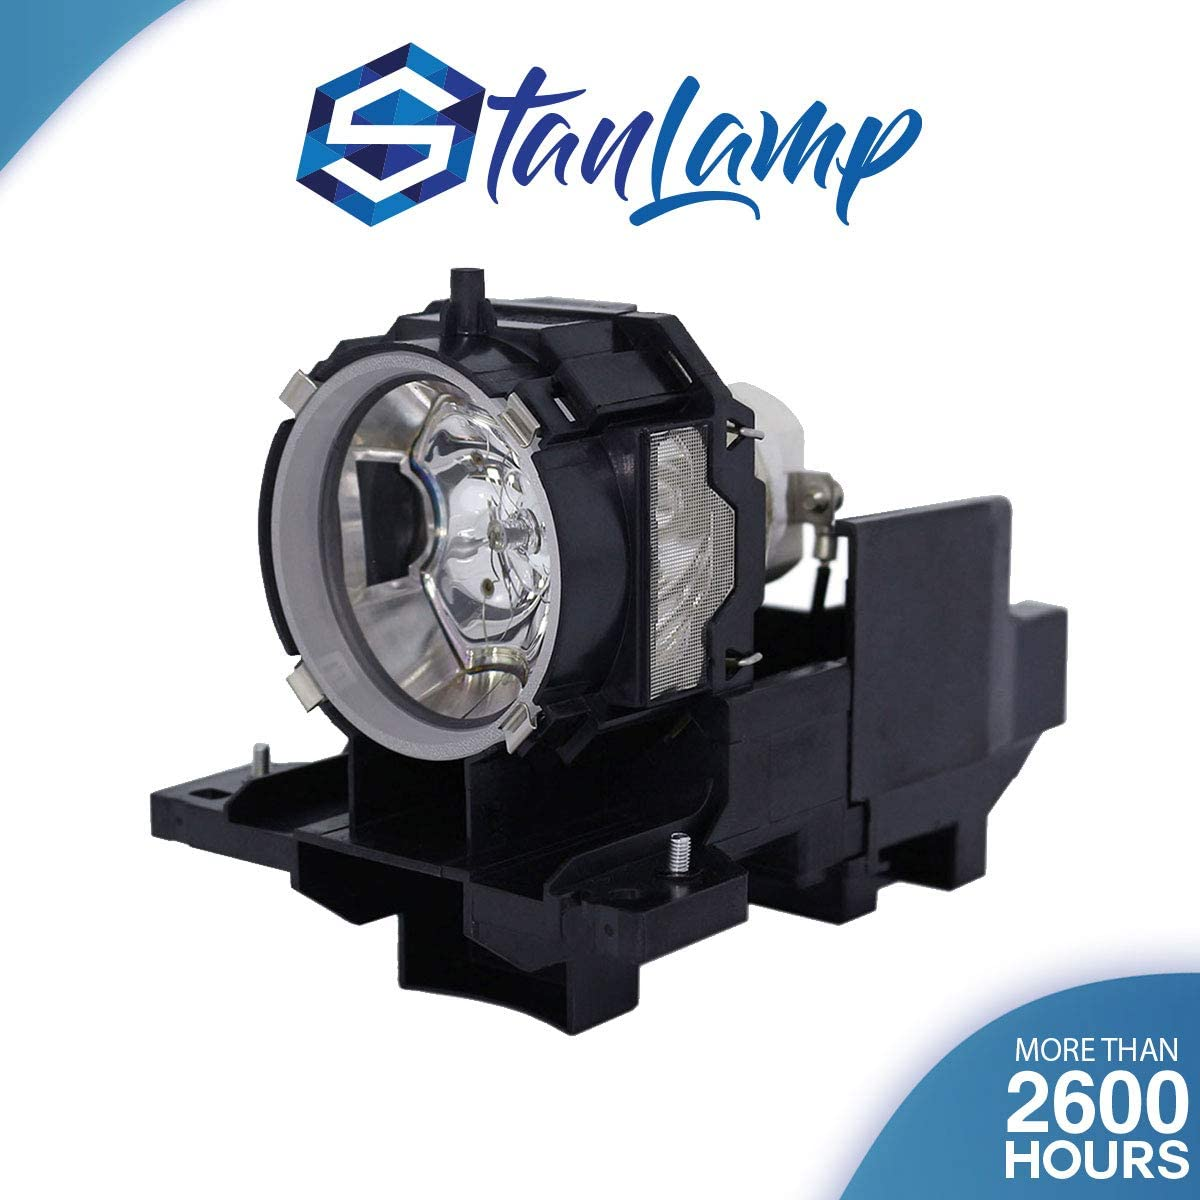 DT01291 StanLamp Projector Replacement Lamp with Housing for Hitachi